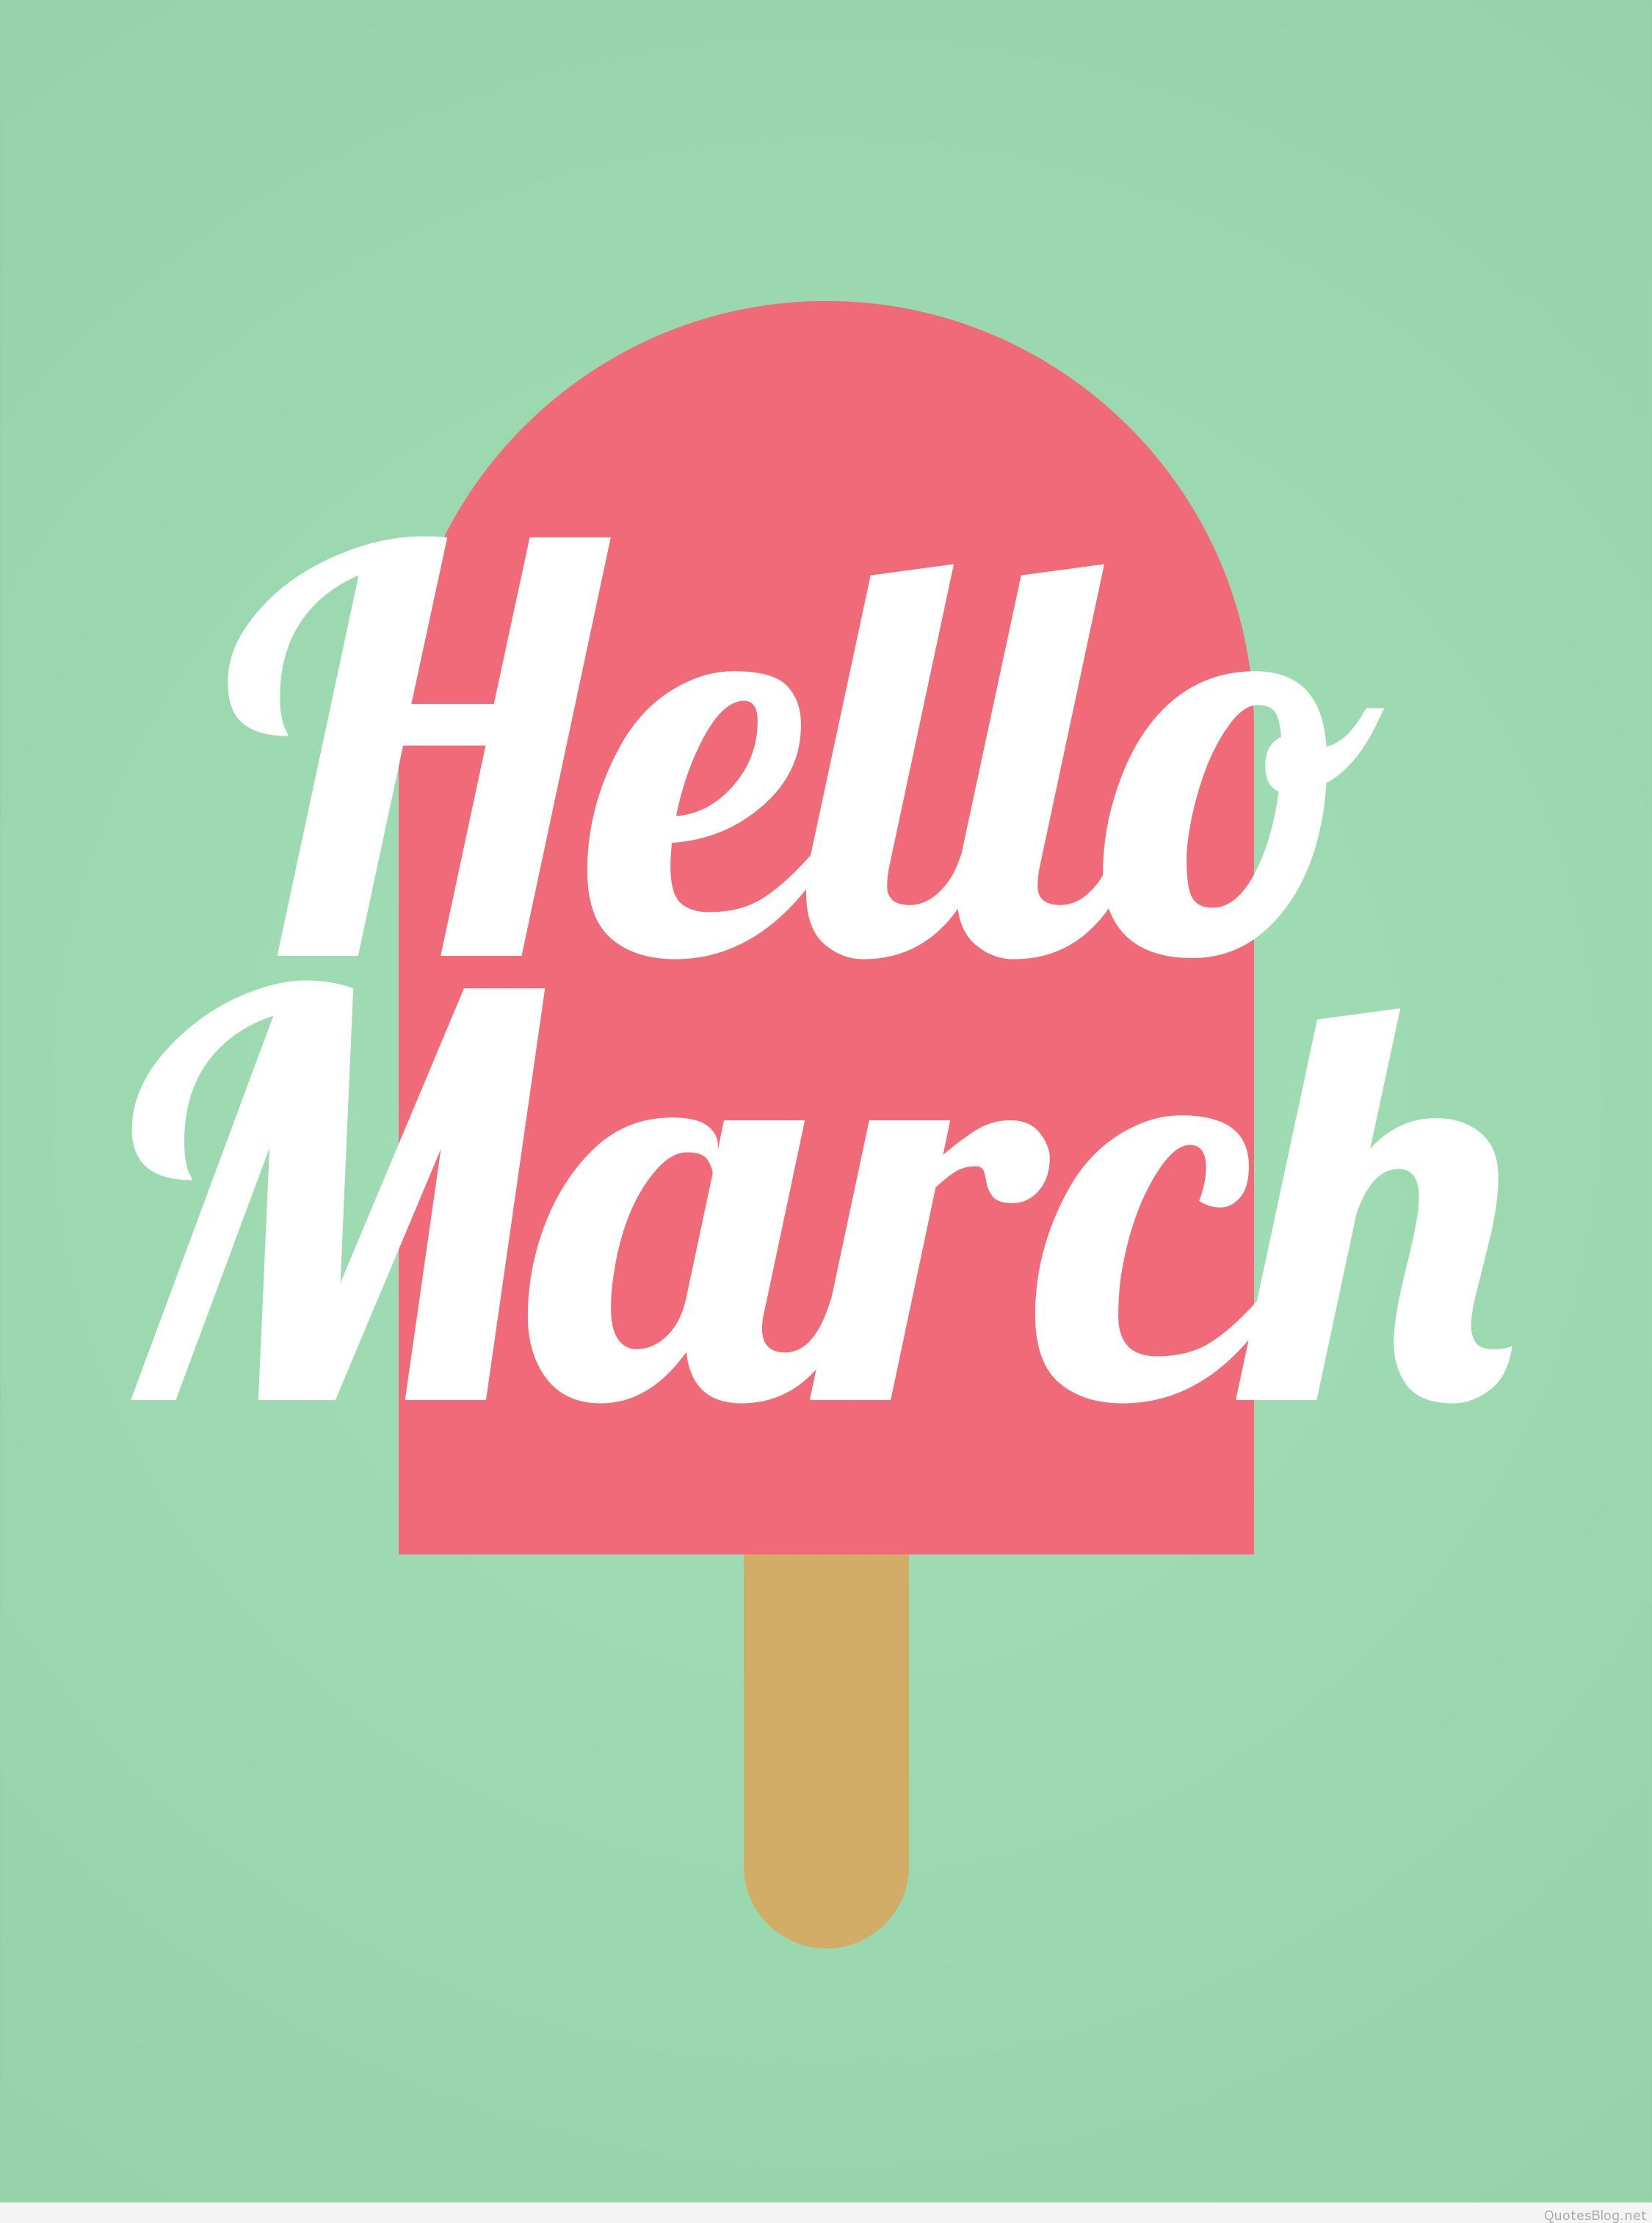 2250x3028 March Wallpapers High Quality | Download Free